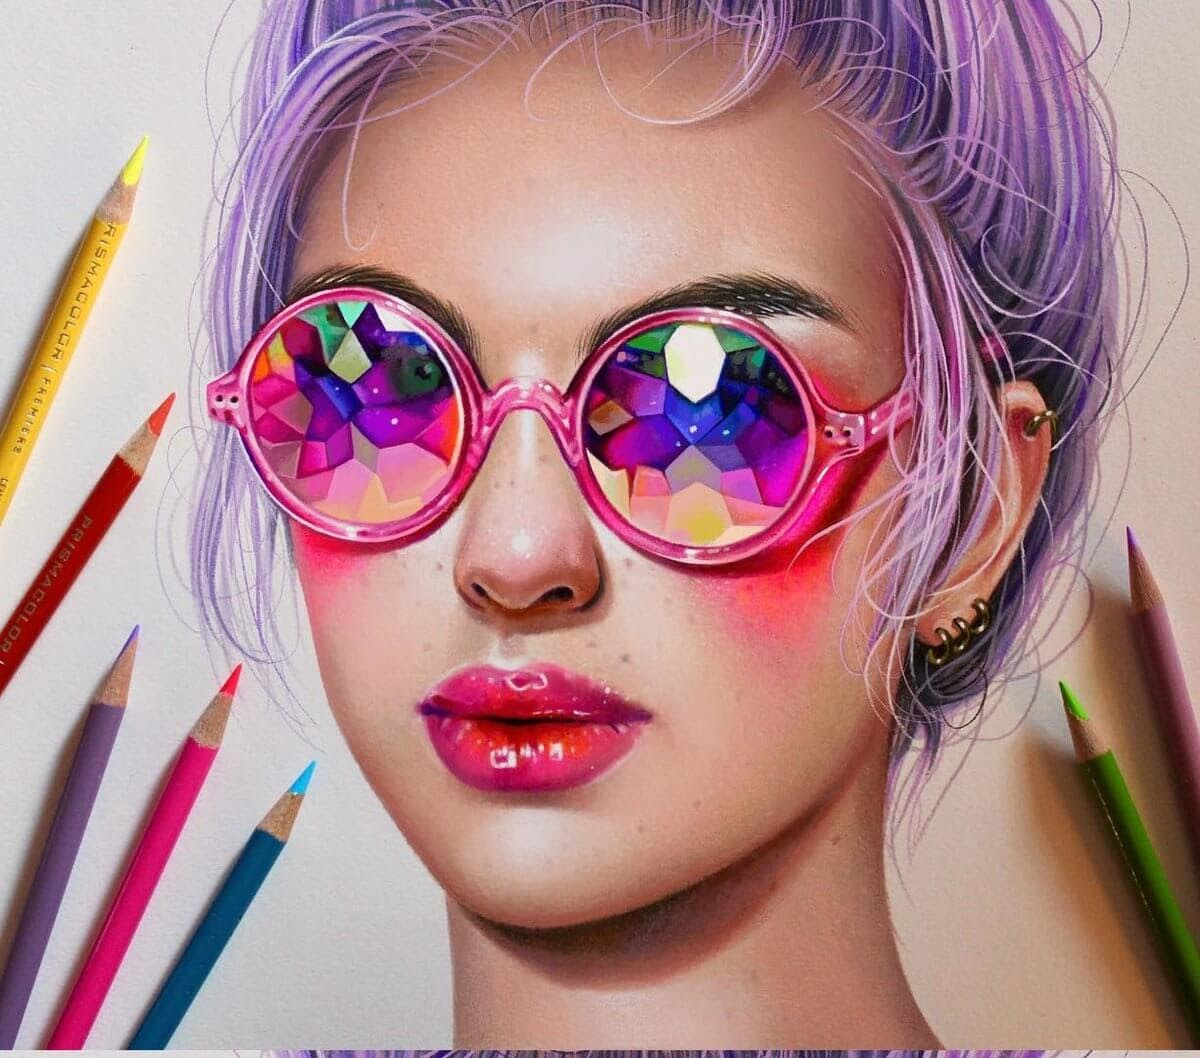 11-Kaleidoscope-Glasses-Glowing-Colorful-Drawings-Morgan-Davidson-www-designstack-co